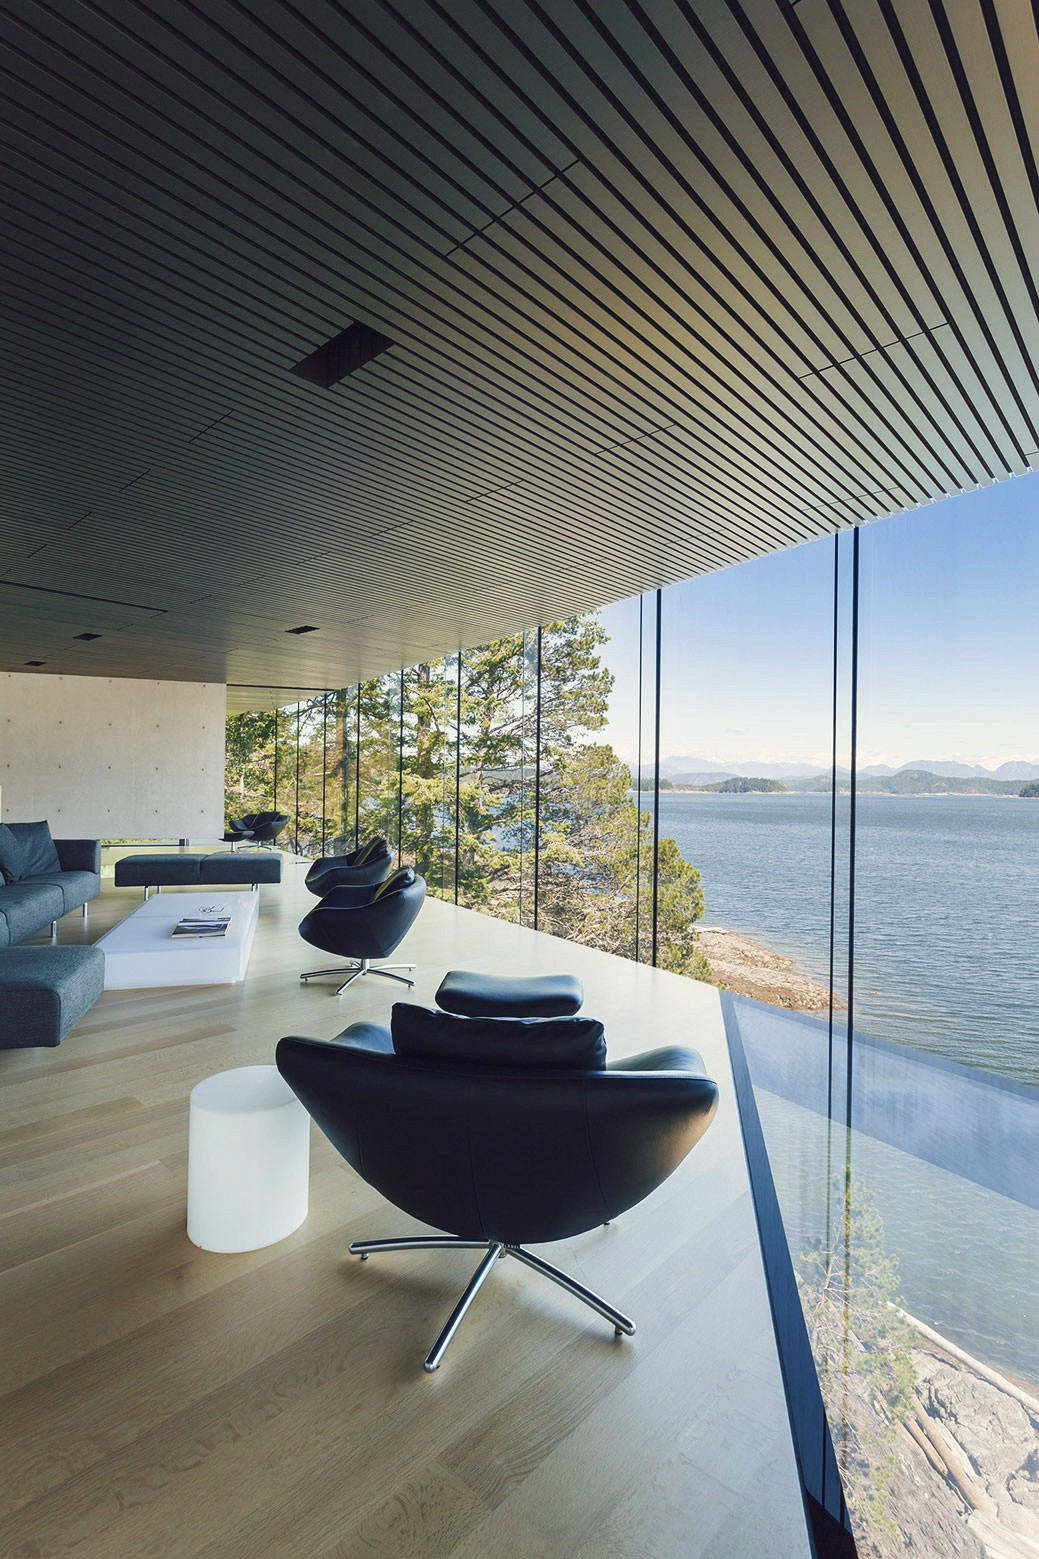 luxury house ocean design window